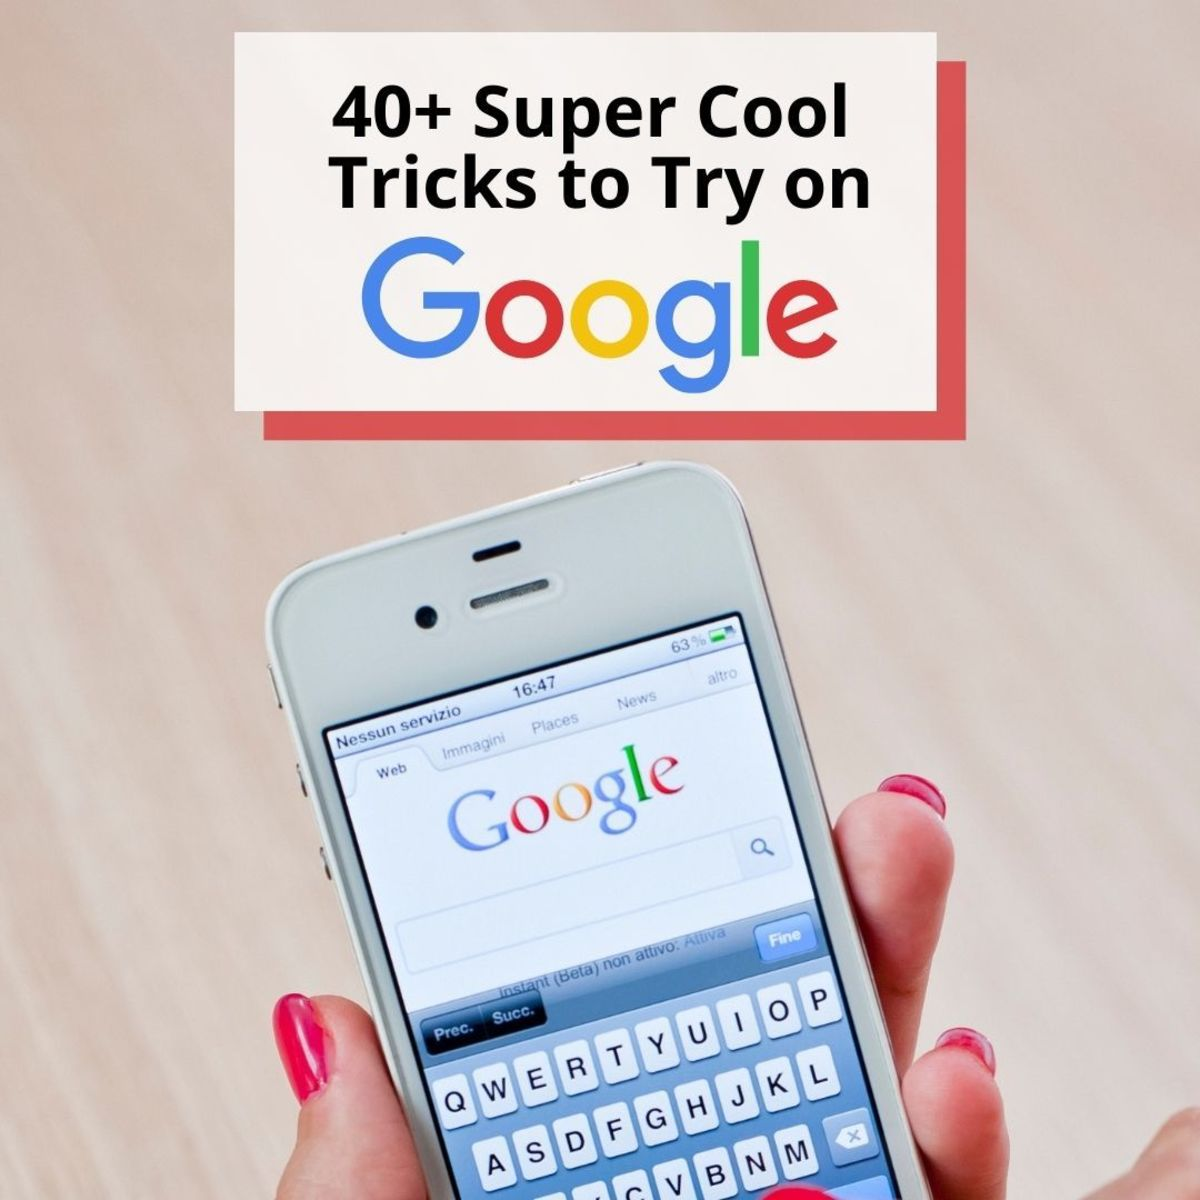 40+ of the Coolest and Most Useful Google Tricks